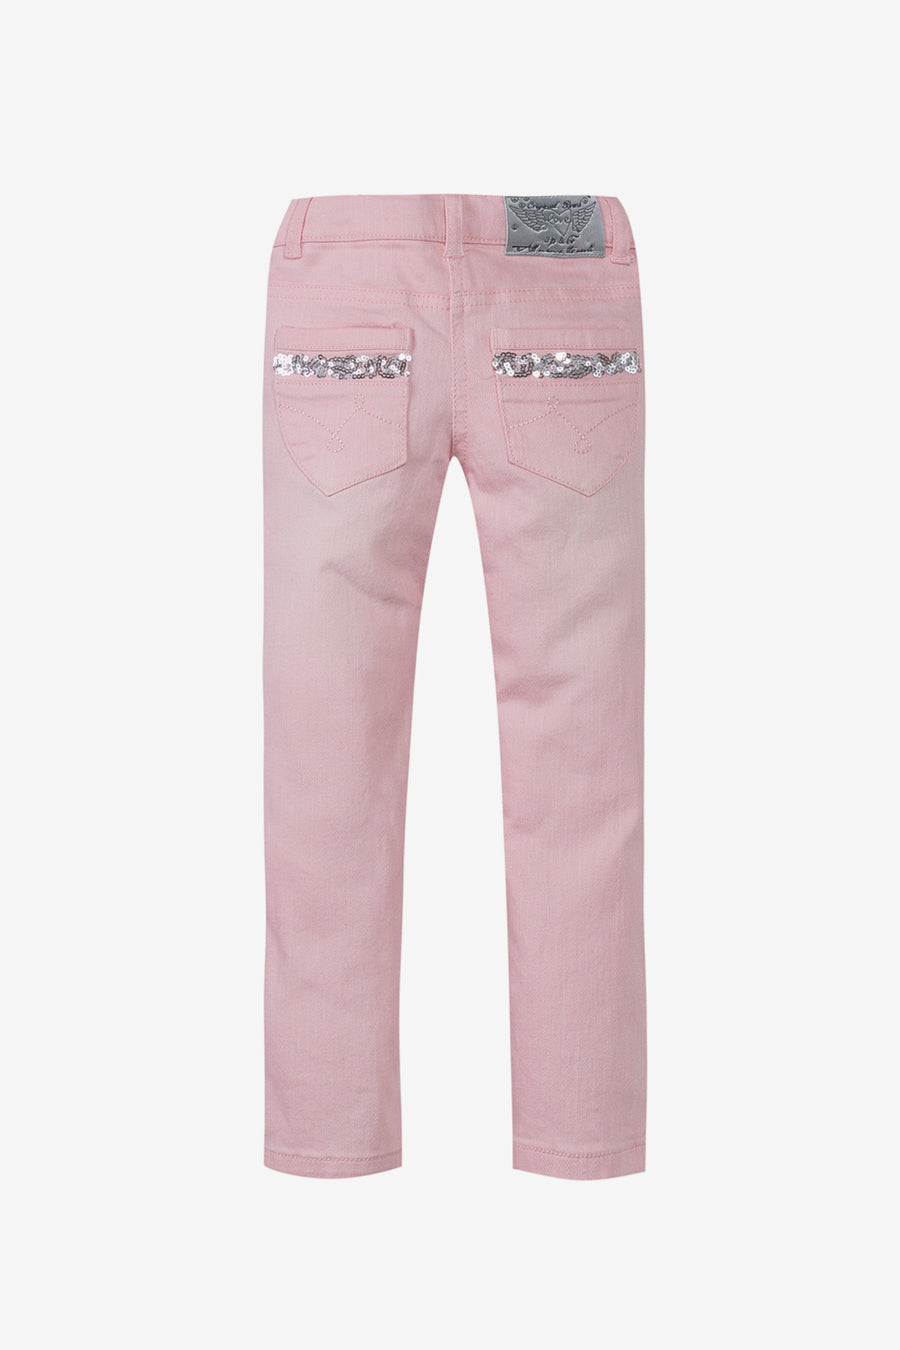 3pommes Pink Jeans